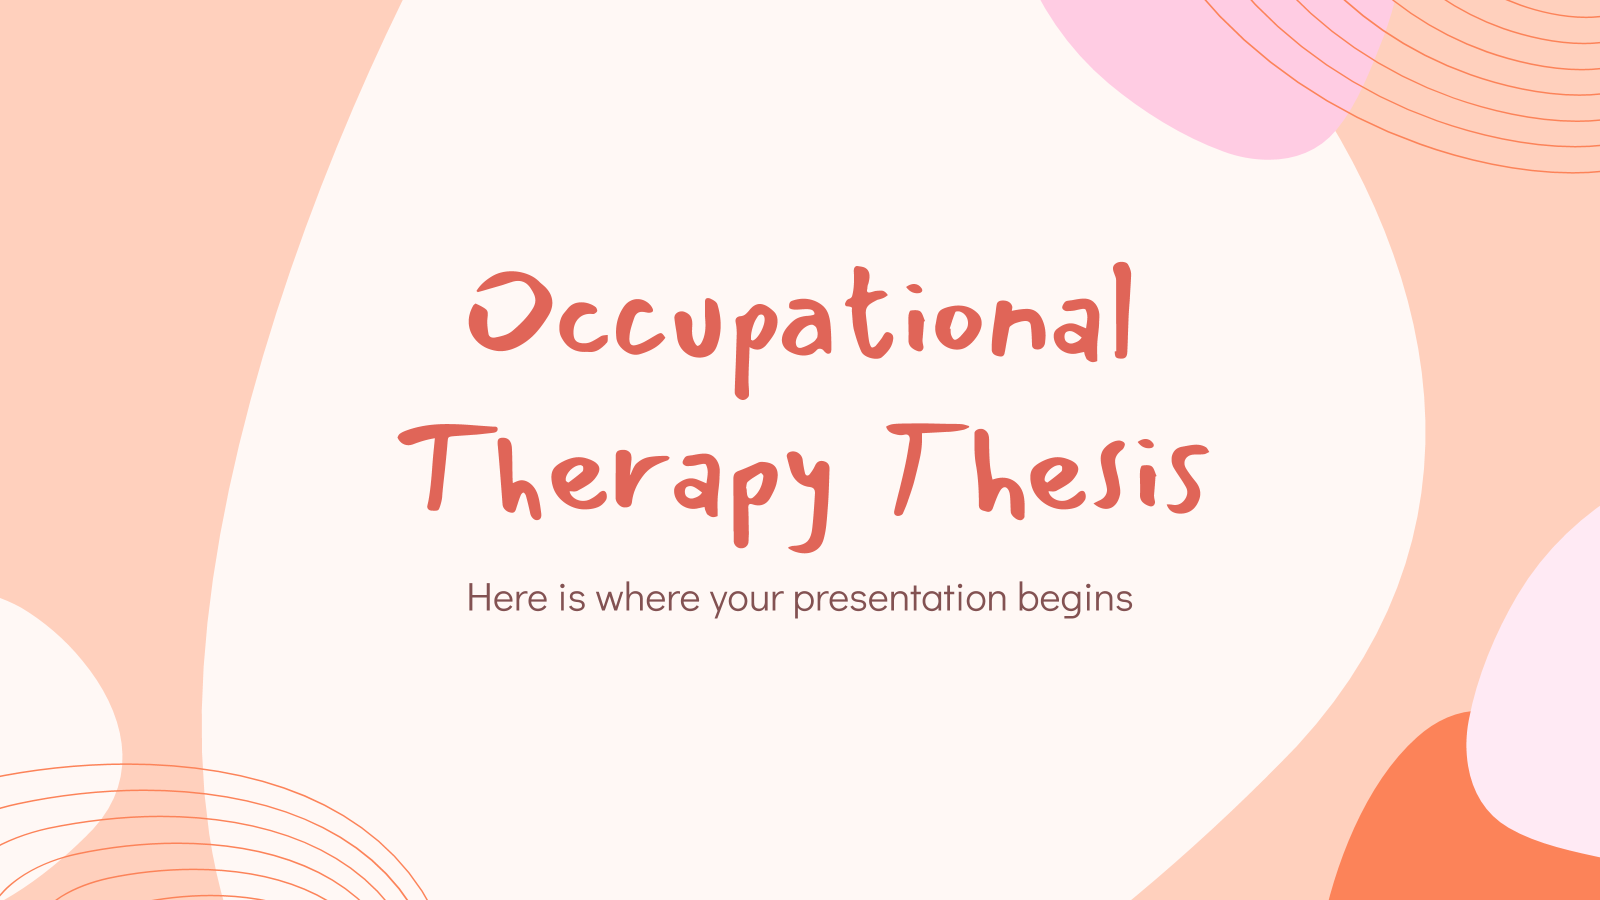 Occupational Therapy Thesis presentation template